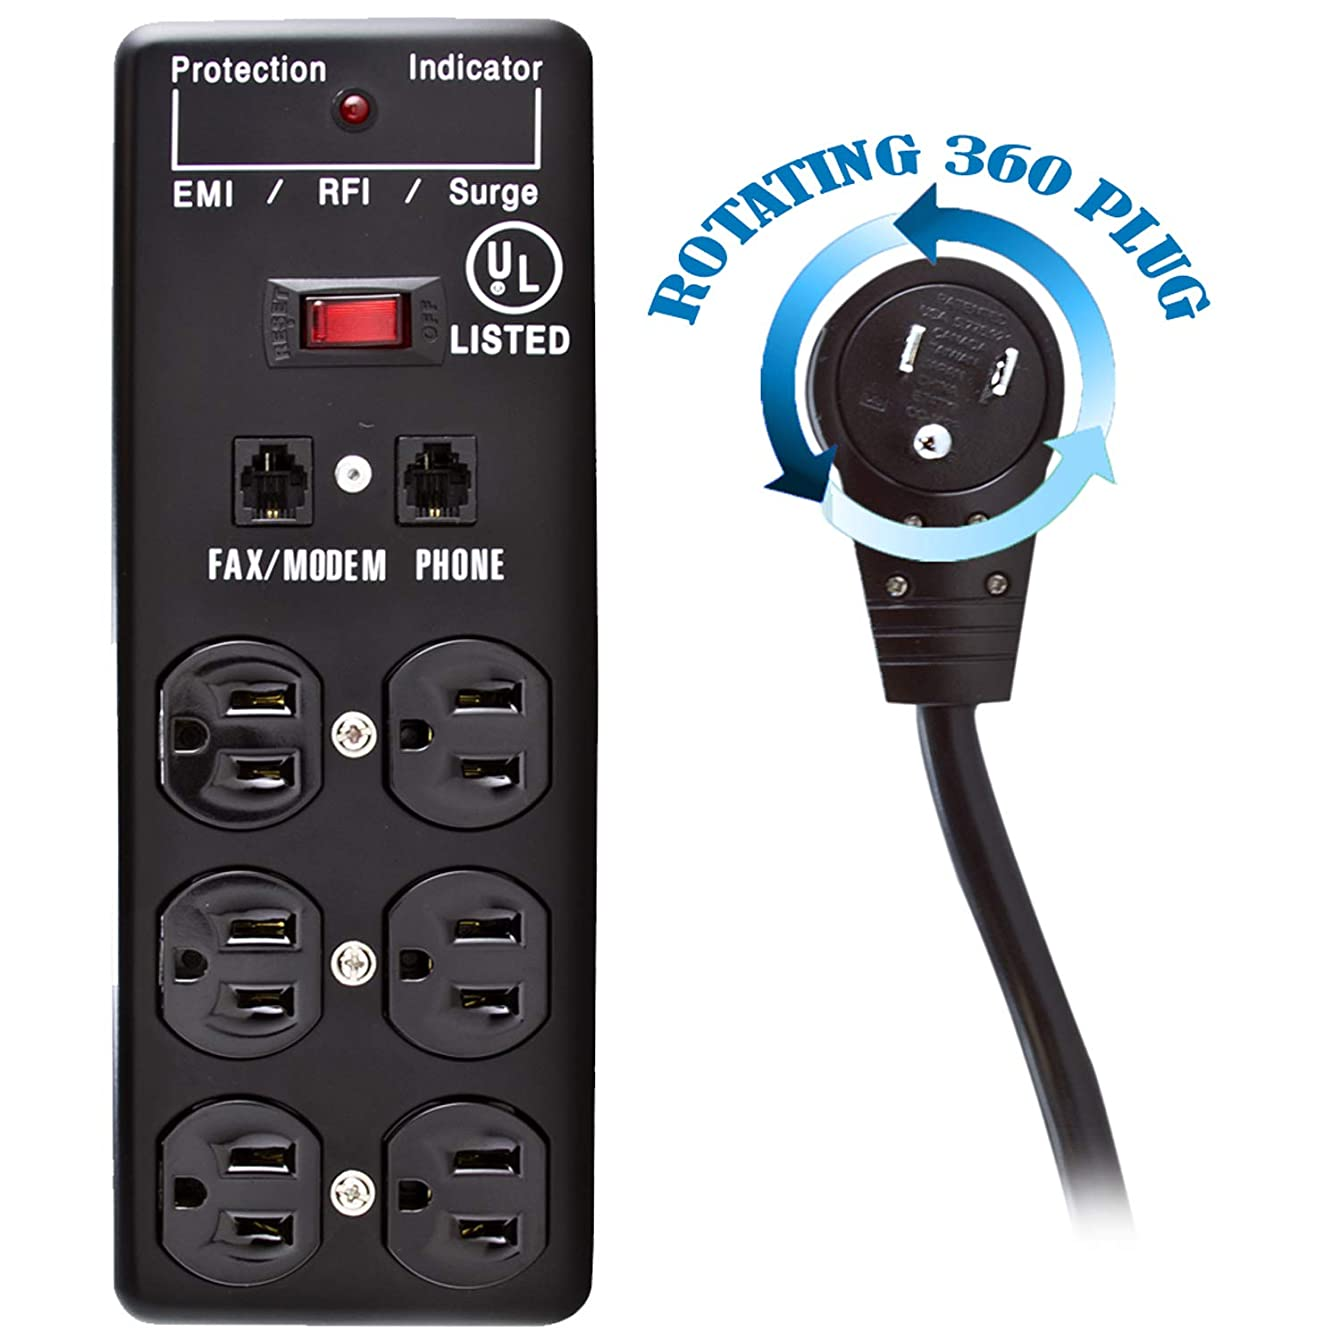 GOWOS Surge Protector - 10 Feet, Black - 6 Outlet Flat Rotating Plug Metal Commercial Grade 1 X3 MOV EMI & RFI Outlets with Power Cord